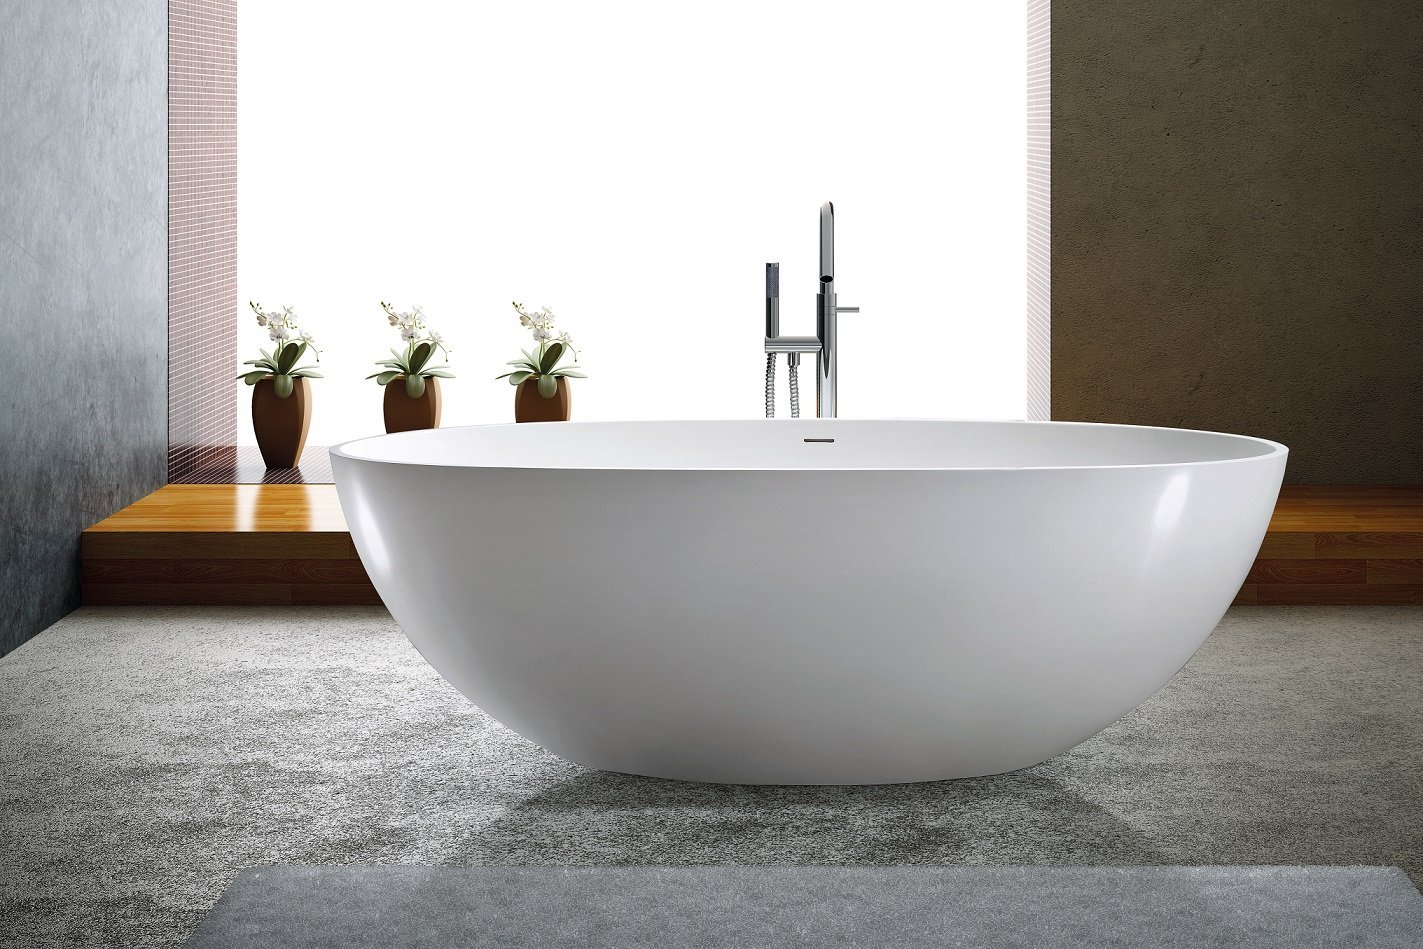 Modern Bathtub - Soaking Bathtub - Freestanding Bathtub - Solid Surface Bathtub - Cast Stone Bathtub - Adalina 71""